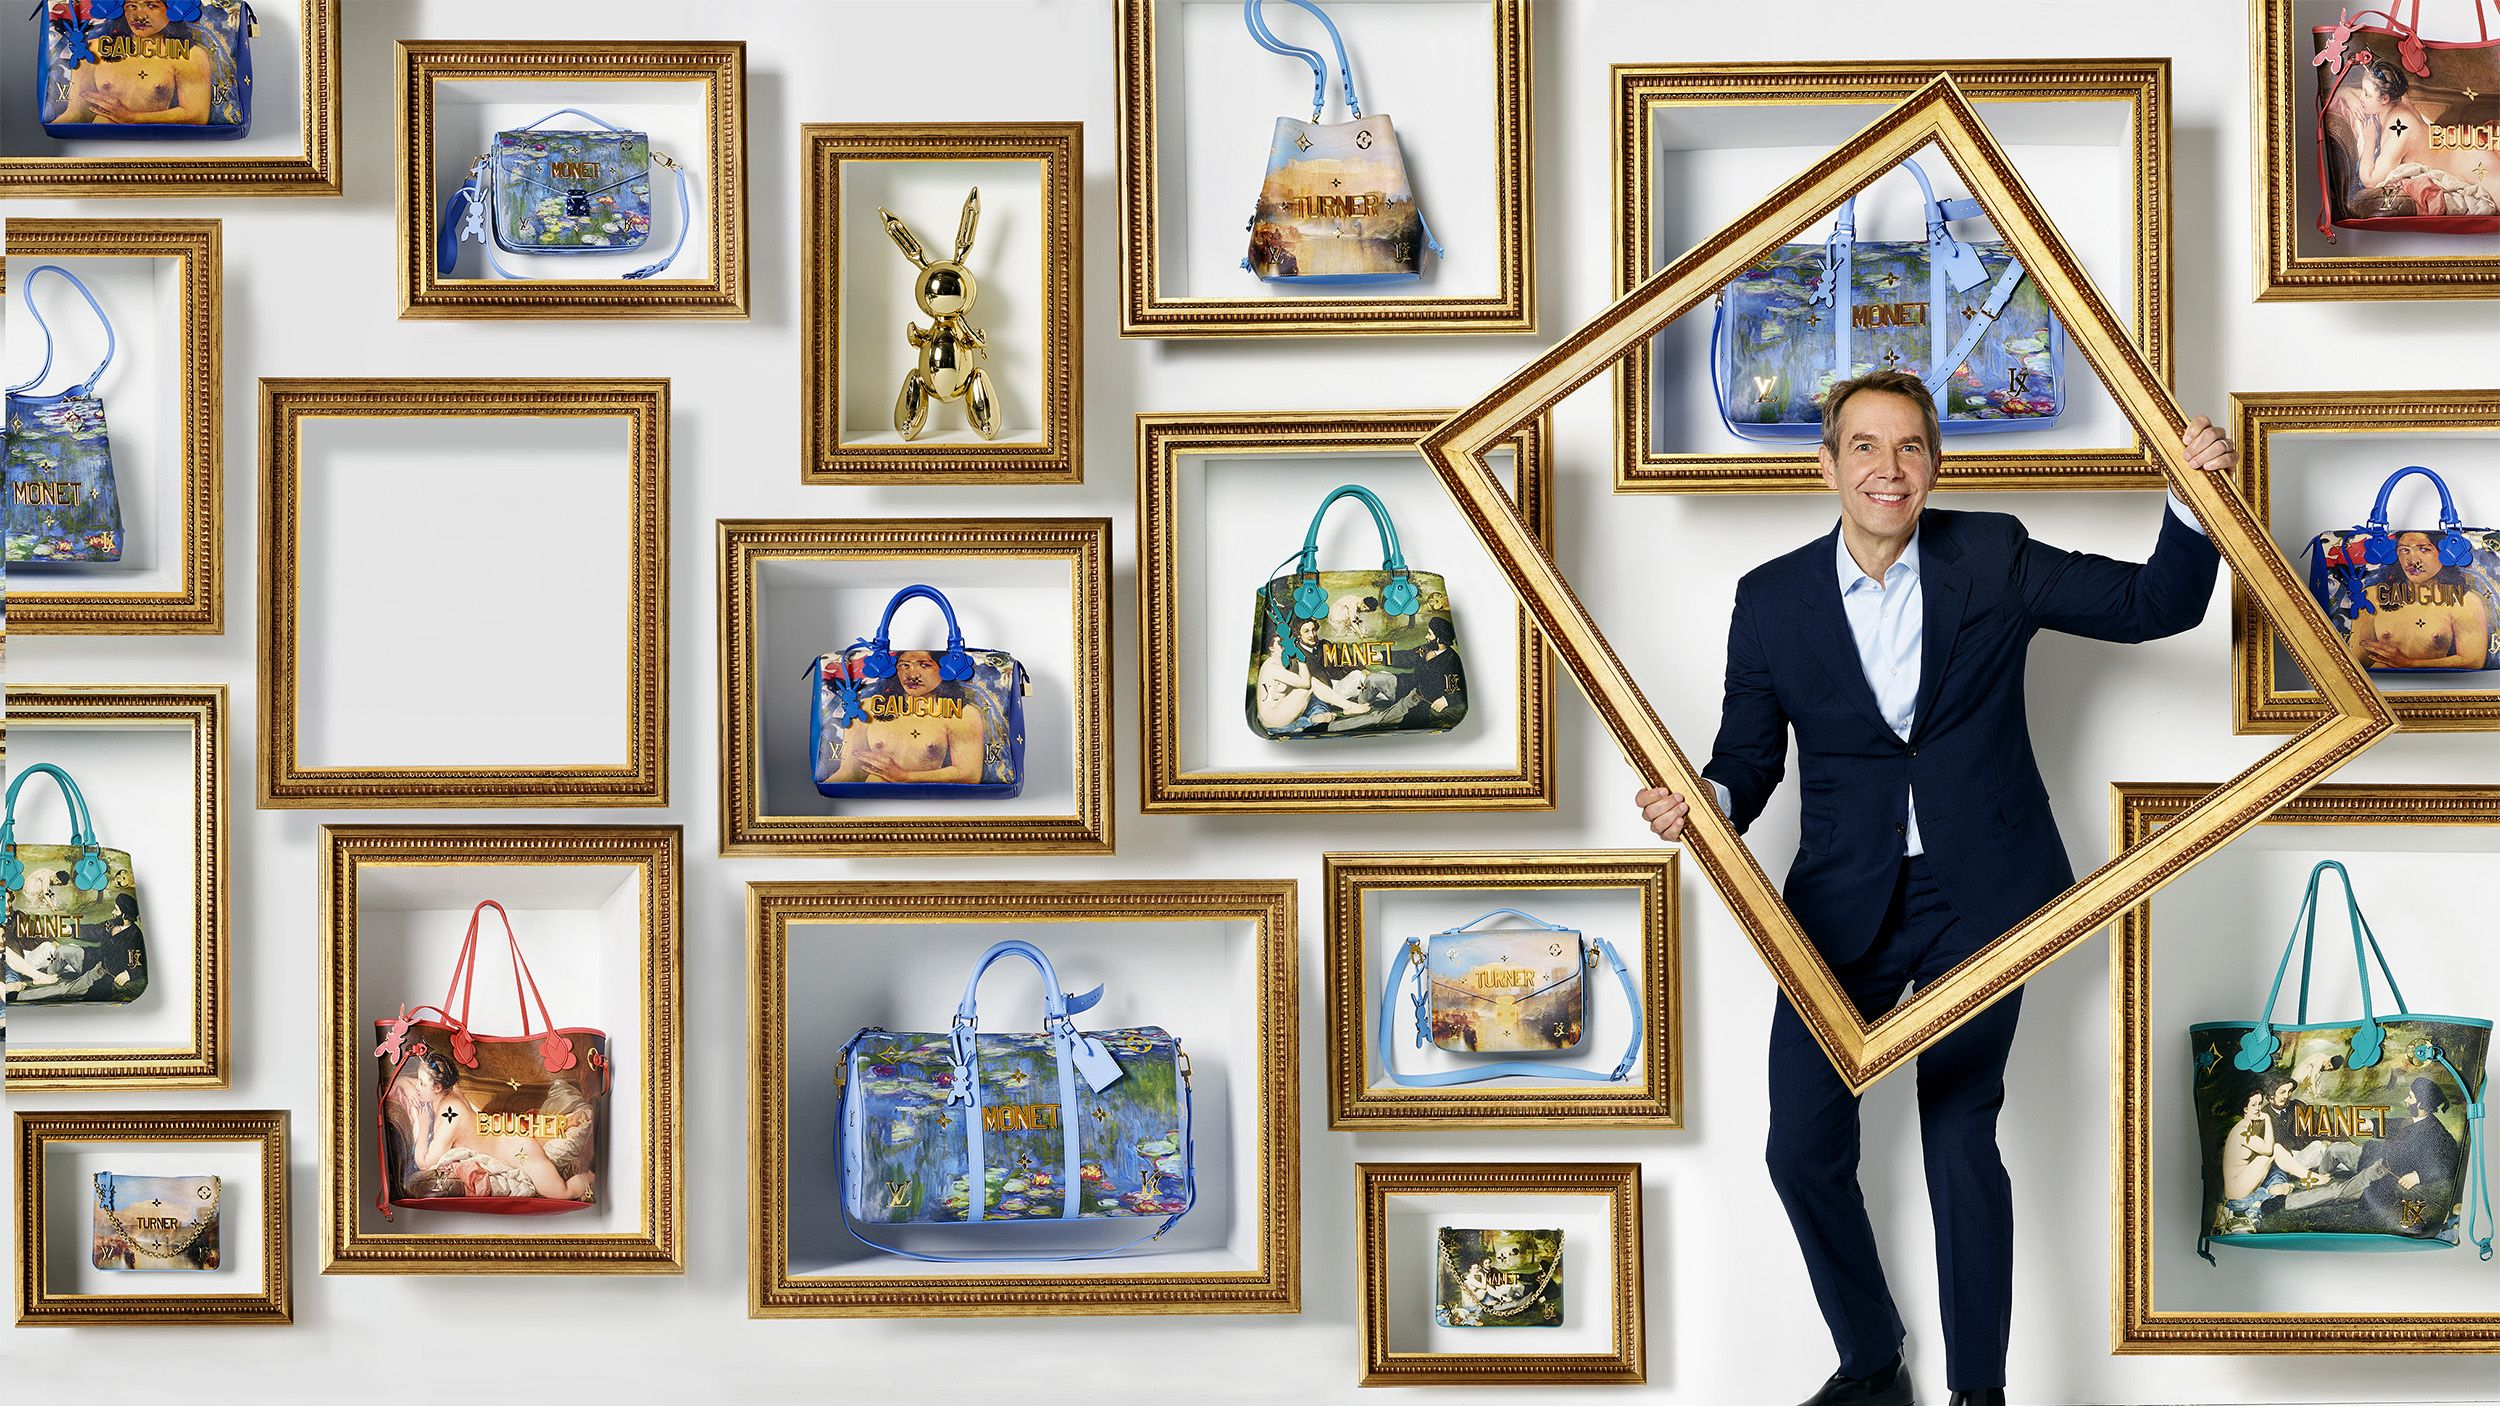 The History of Art According to Jeff Koons